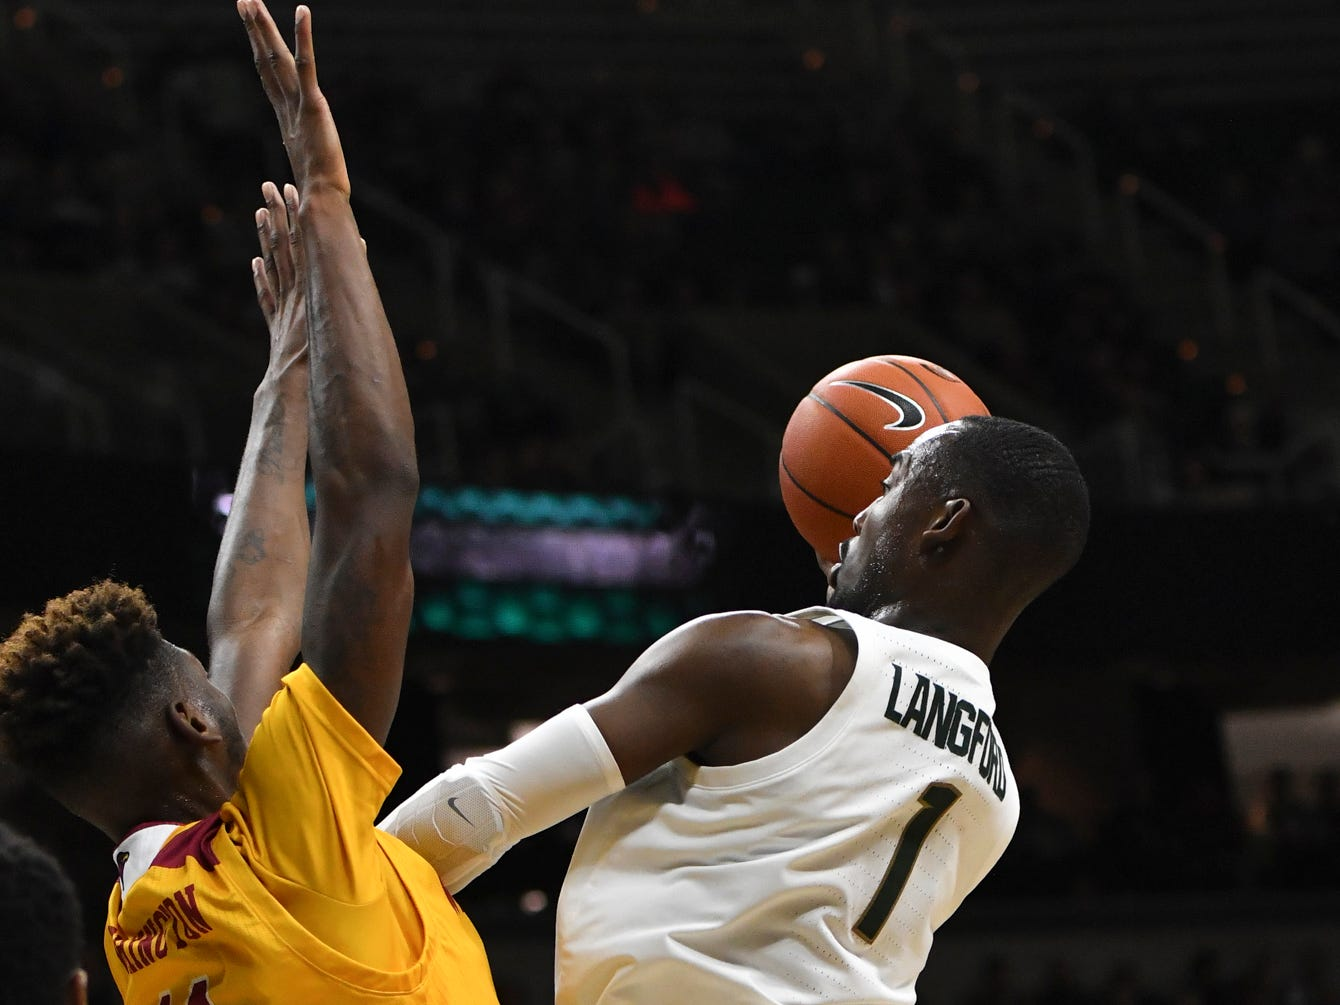 MSU's Joshua Langford shoots against Louisiana-Monroe's Andre Washington Wednesday, Nov. 14, 2018, at the Breslin Center.  MSU won 80-59.